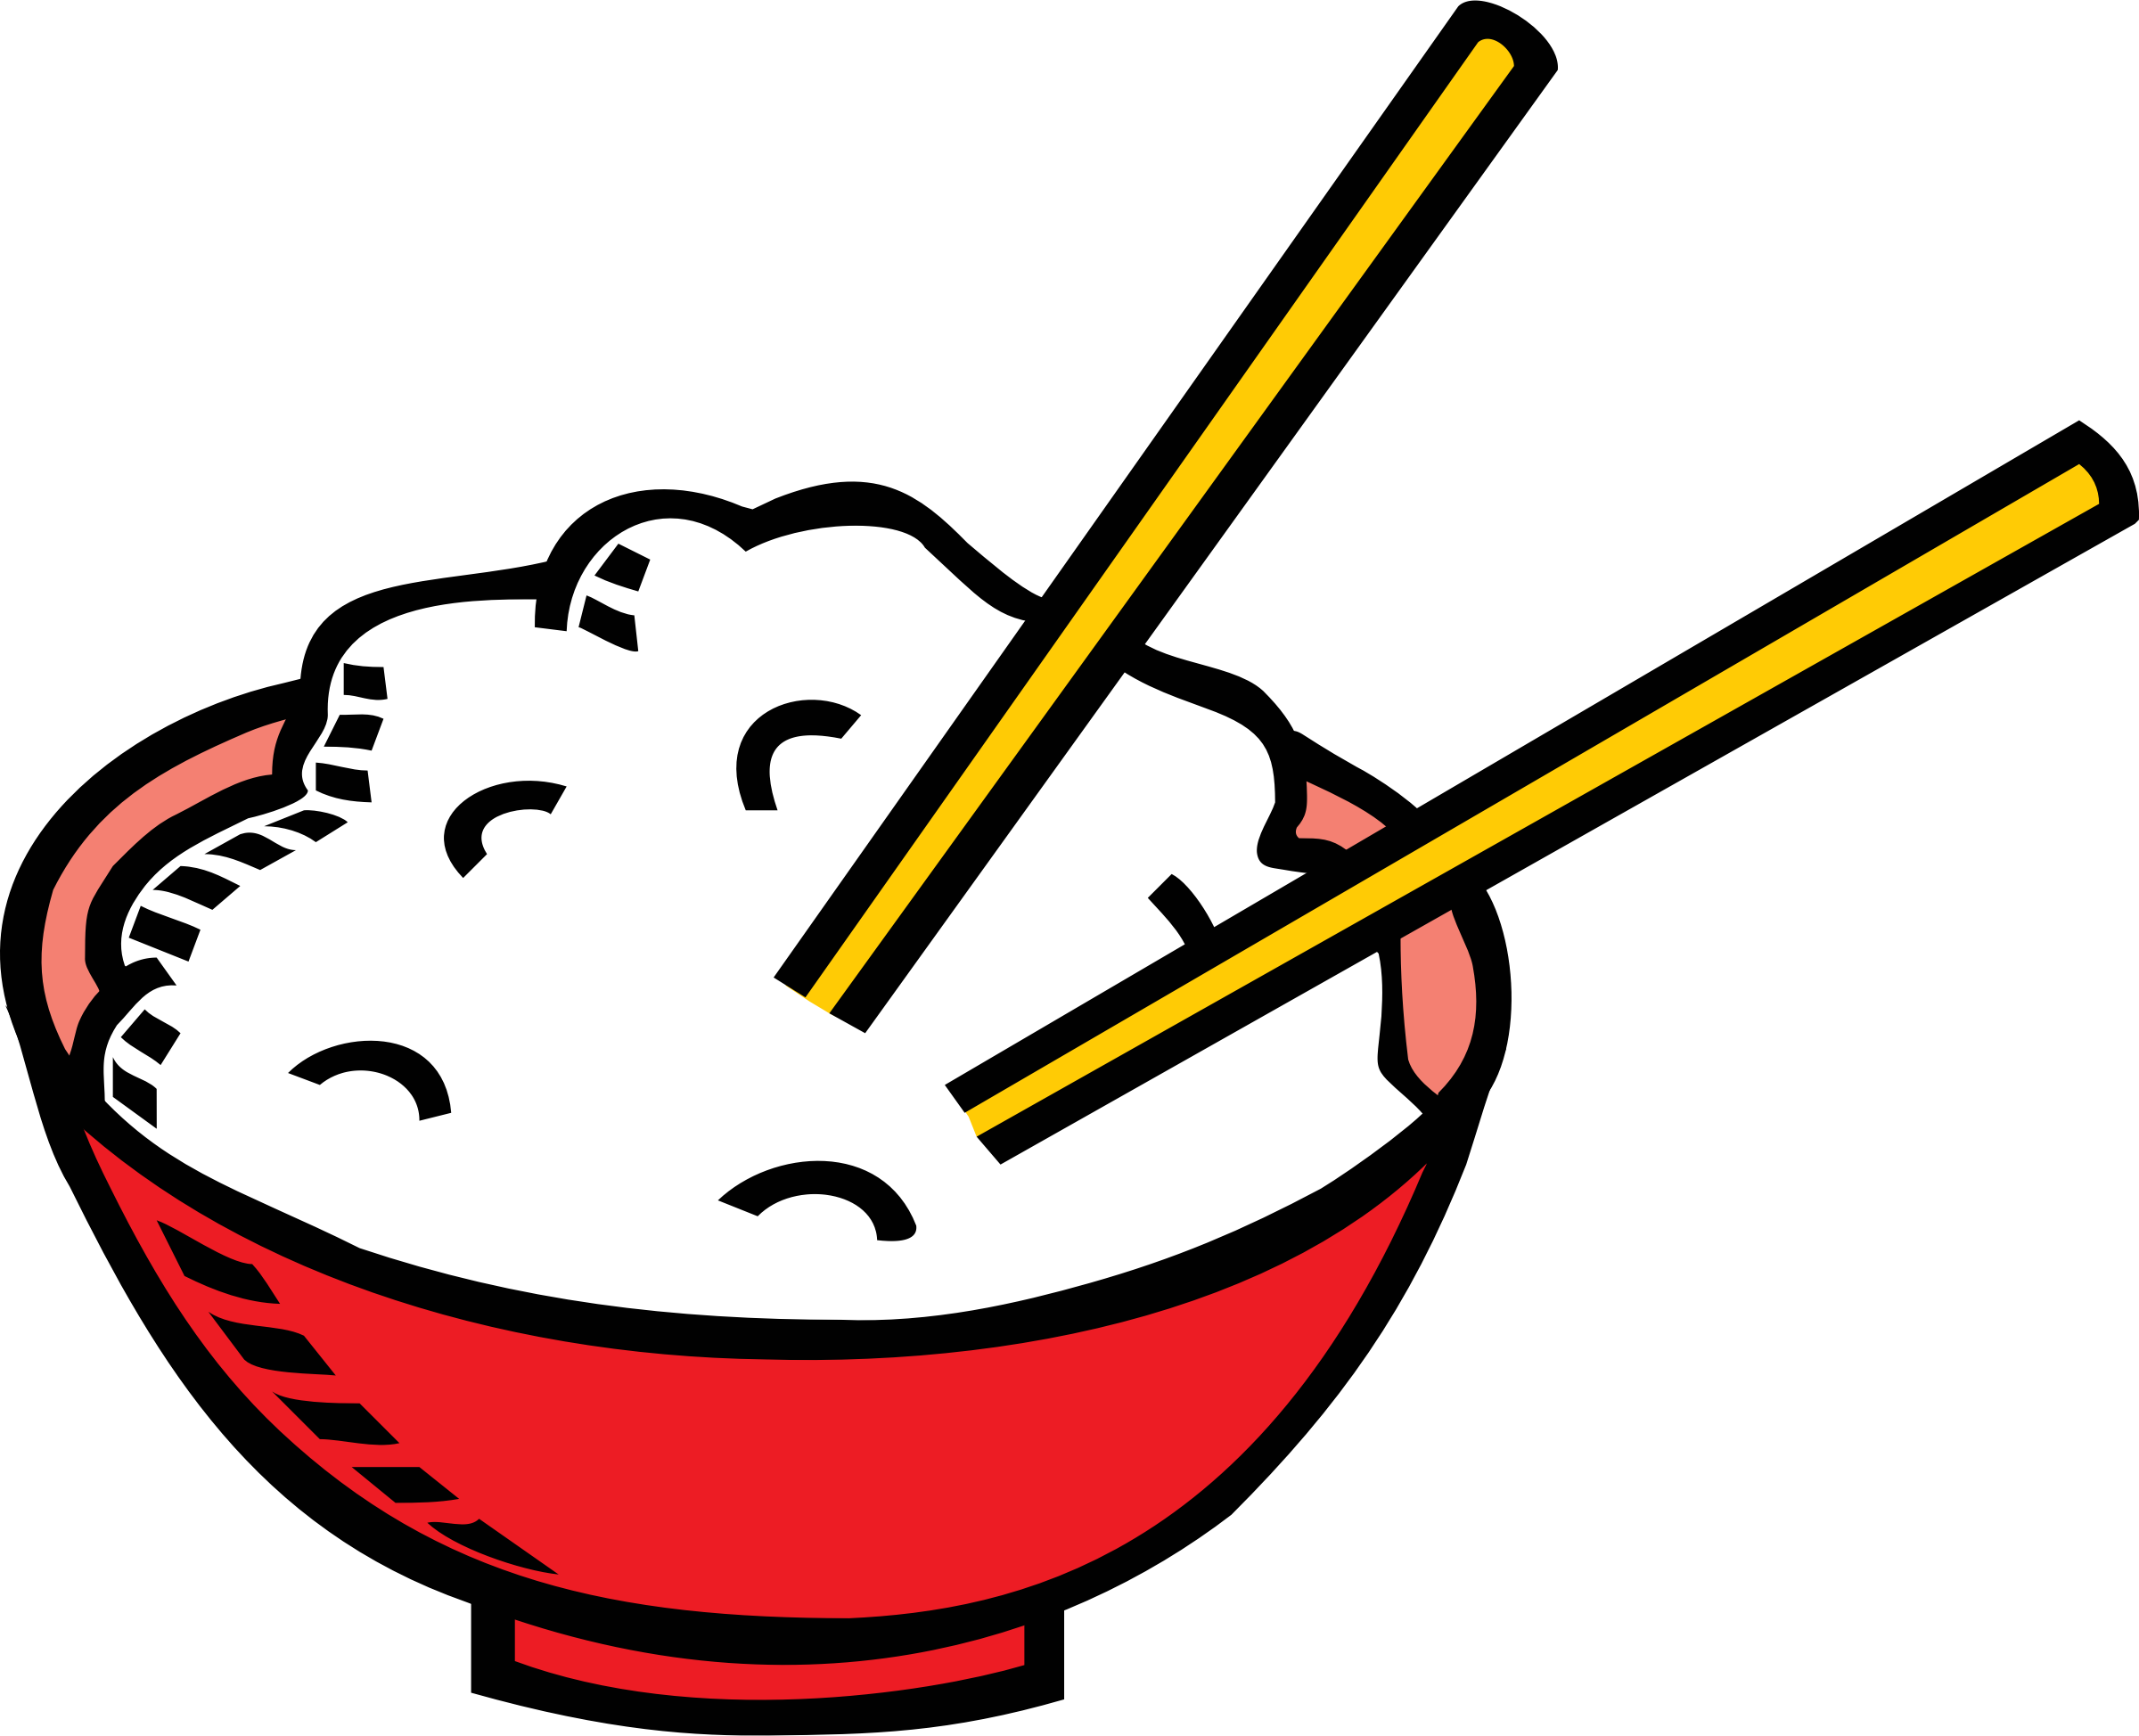 Bowl of rice and chopsticks by dkdlv